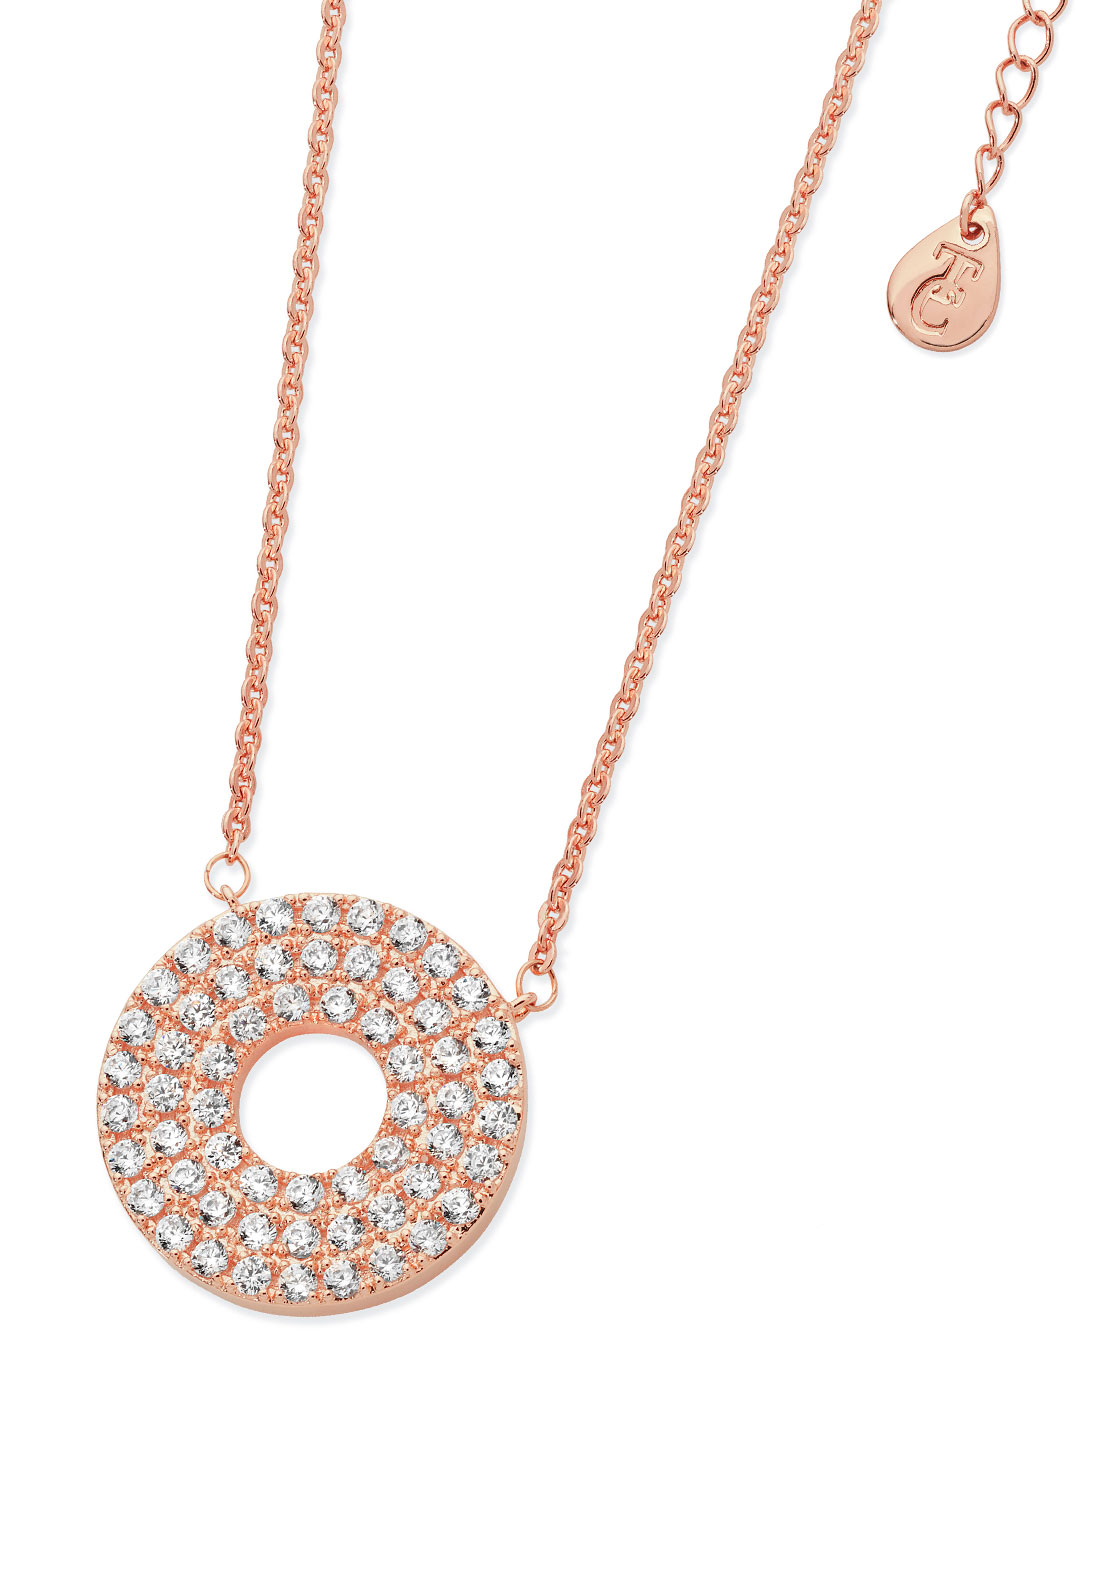 Tipperary Crystal Triple Band Moon Necklace, Rose Gold